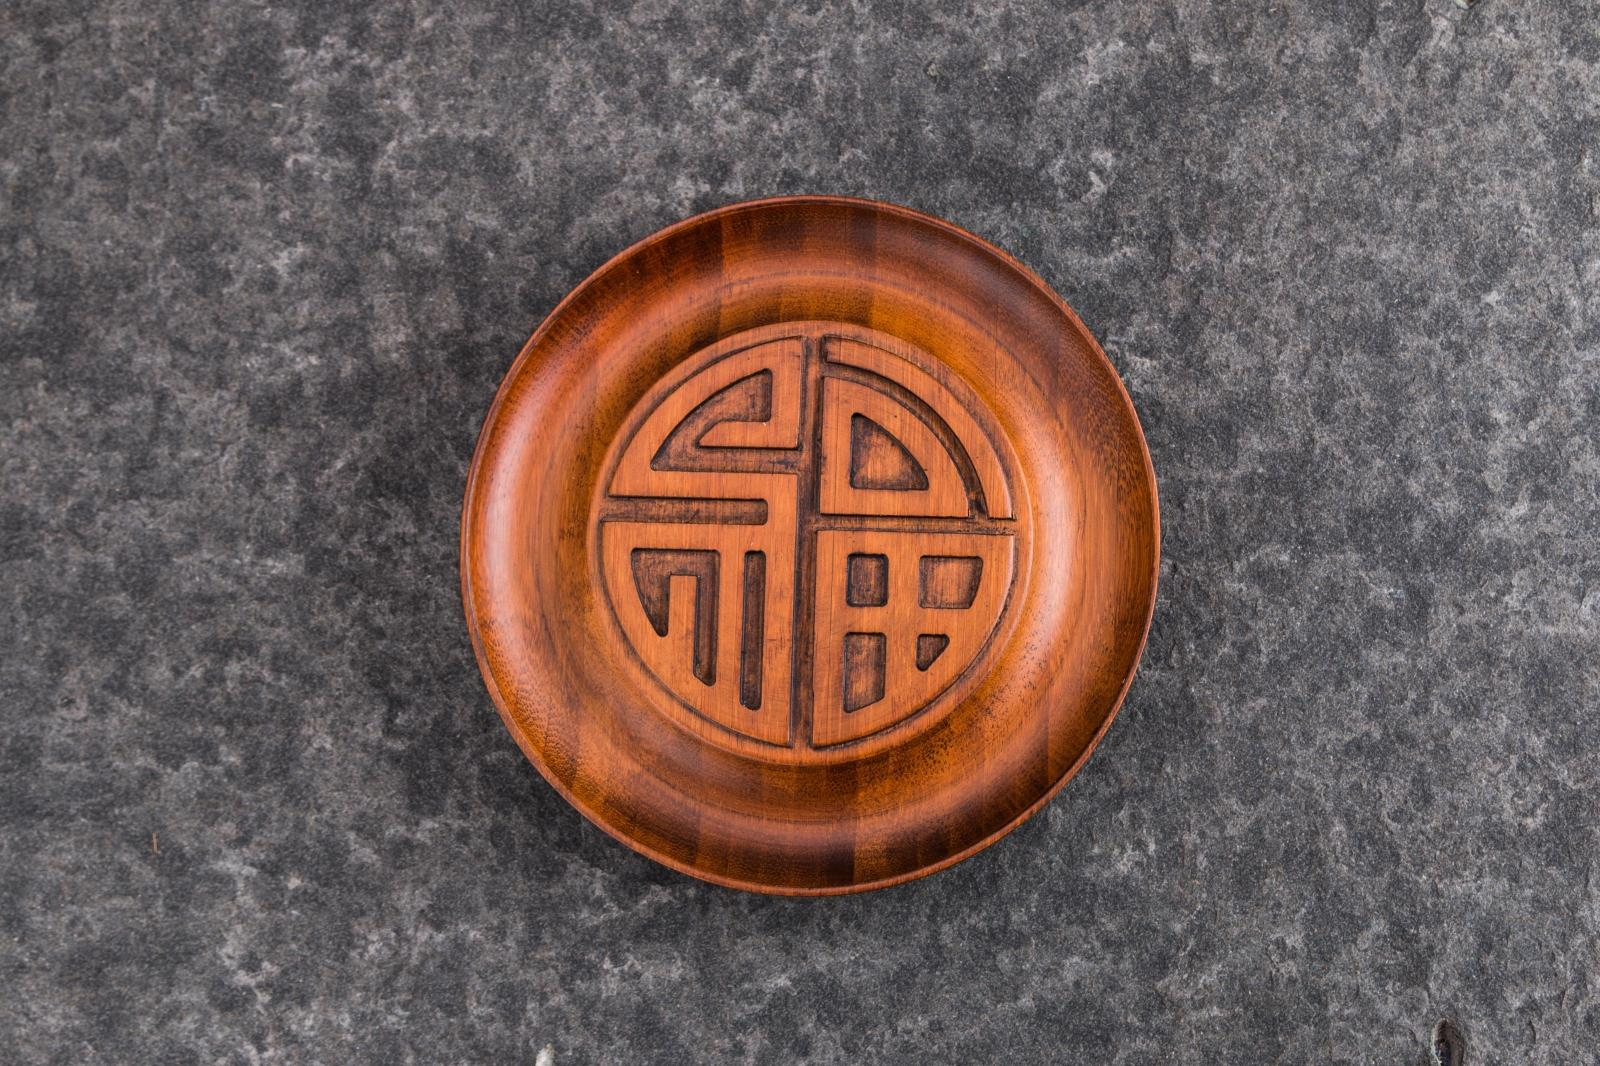 Stayed cheng pot dry tea tray bamboo bamboo tea tray kung fu tea small tea tray tea accessories tea bong fu cheng